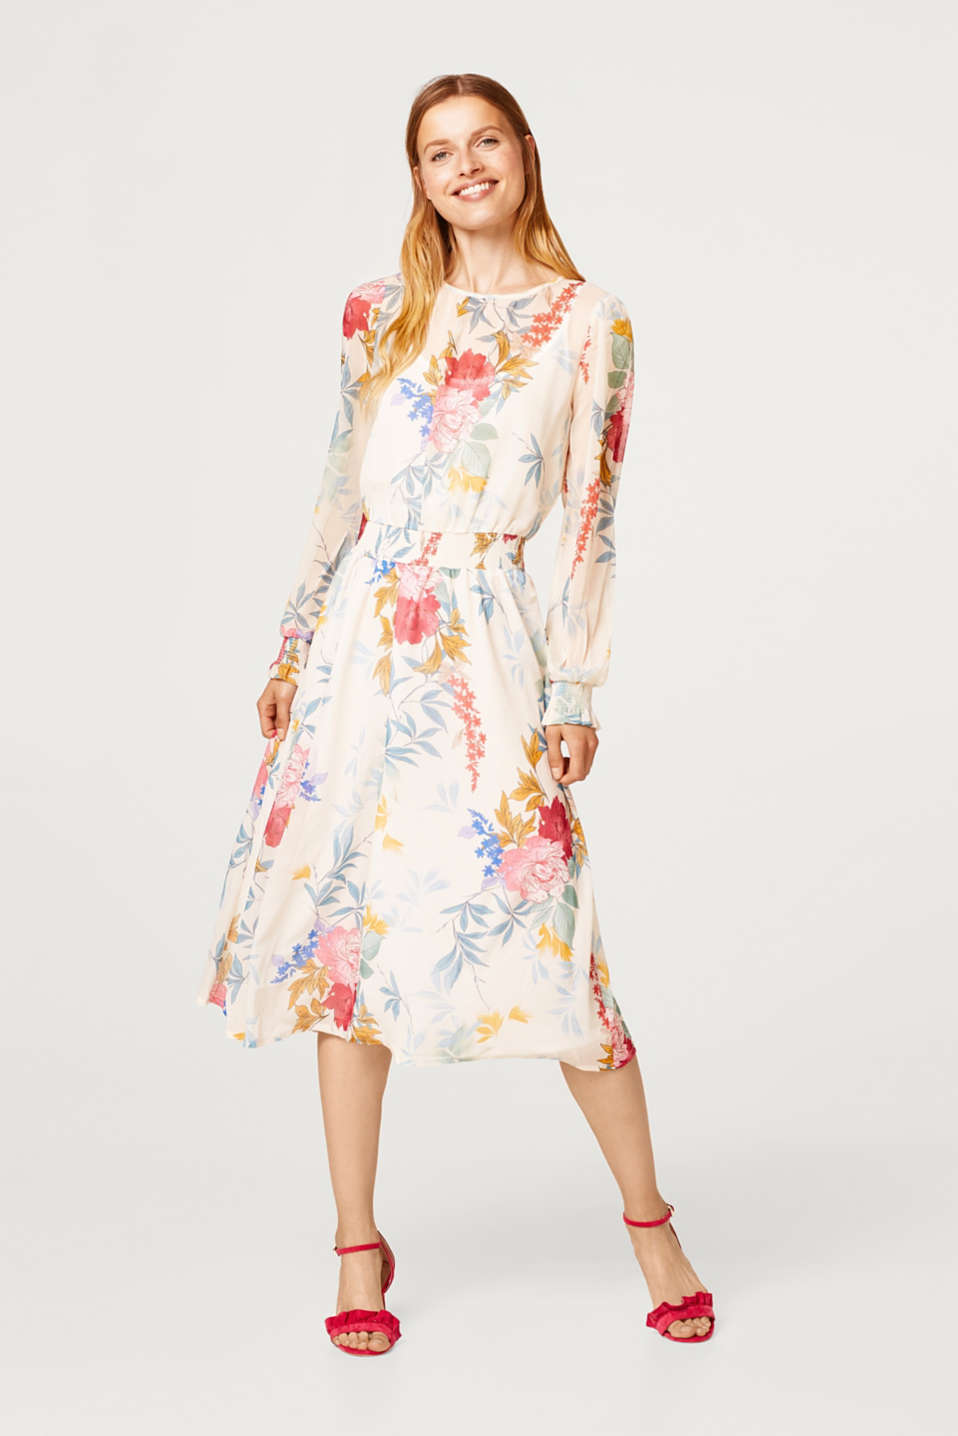 Midi dress in delicate chiffon with a floral print